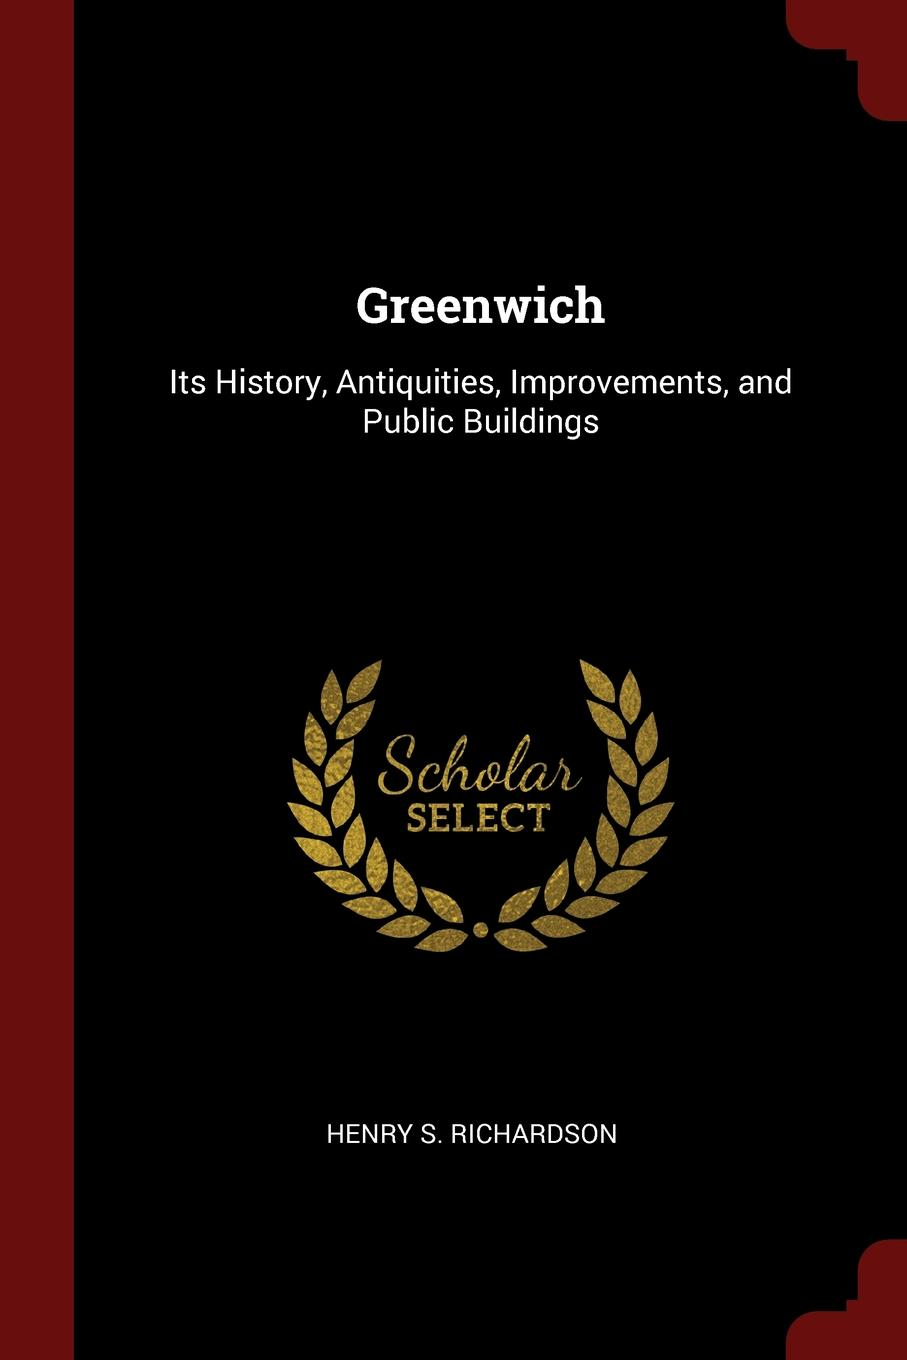 Henry S. Richardson Greenwich. Its History, Antiquities, Improvements, and Public Buildings